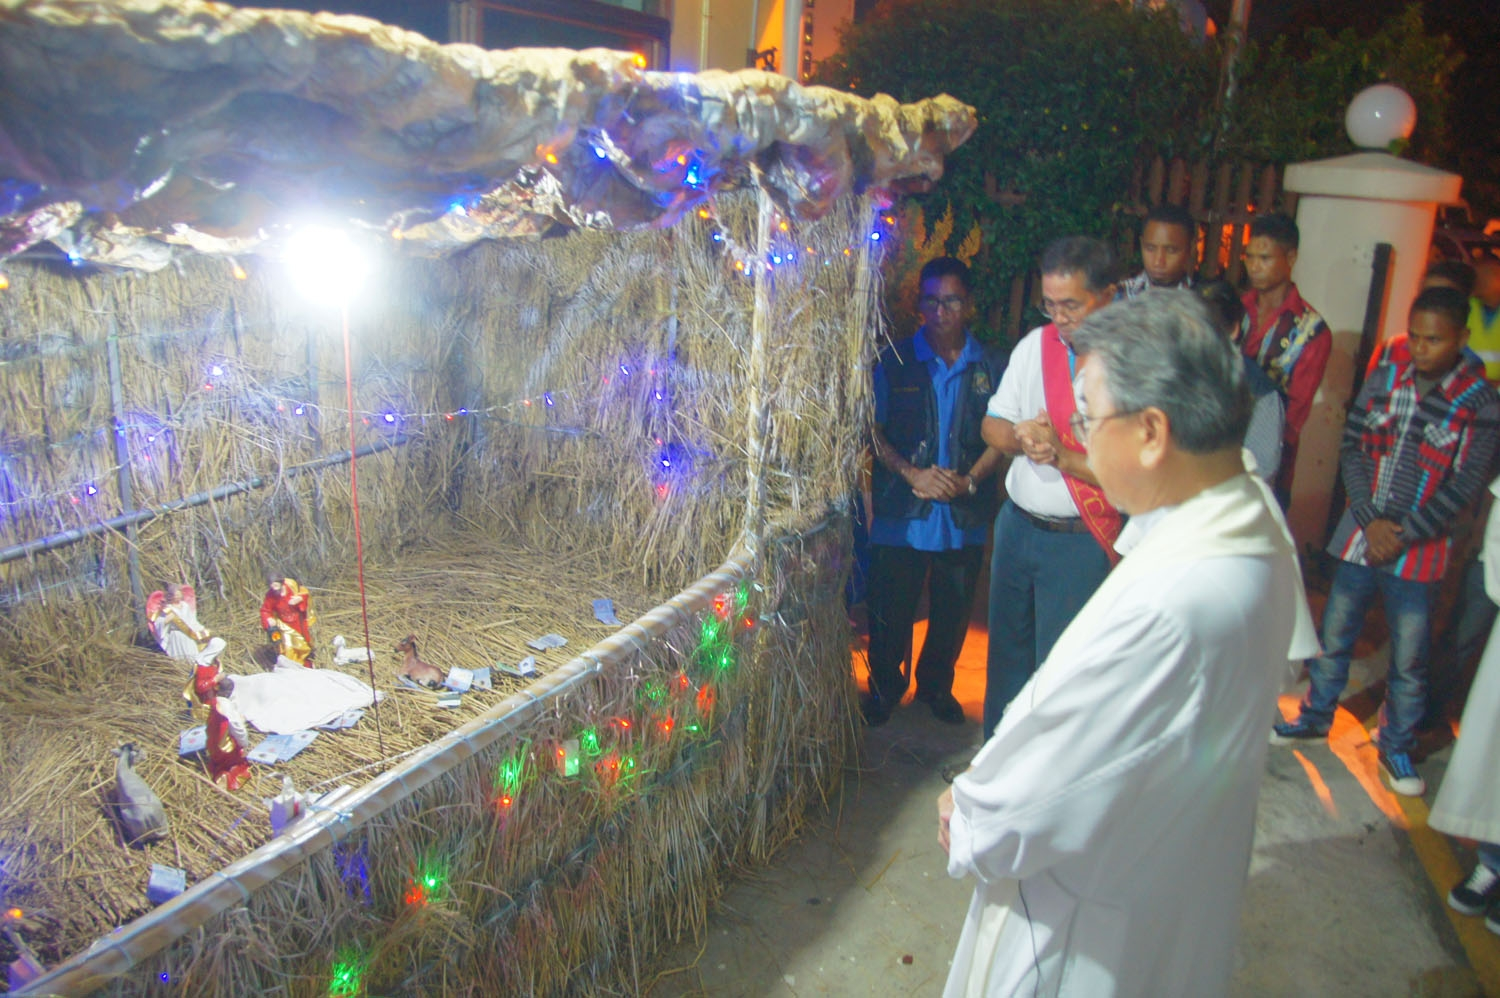 Bp Piong cotemplates on the manger scene.